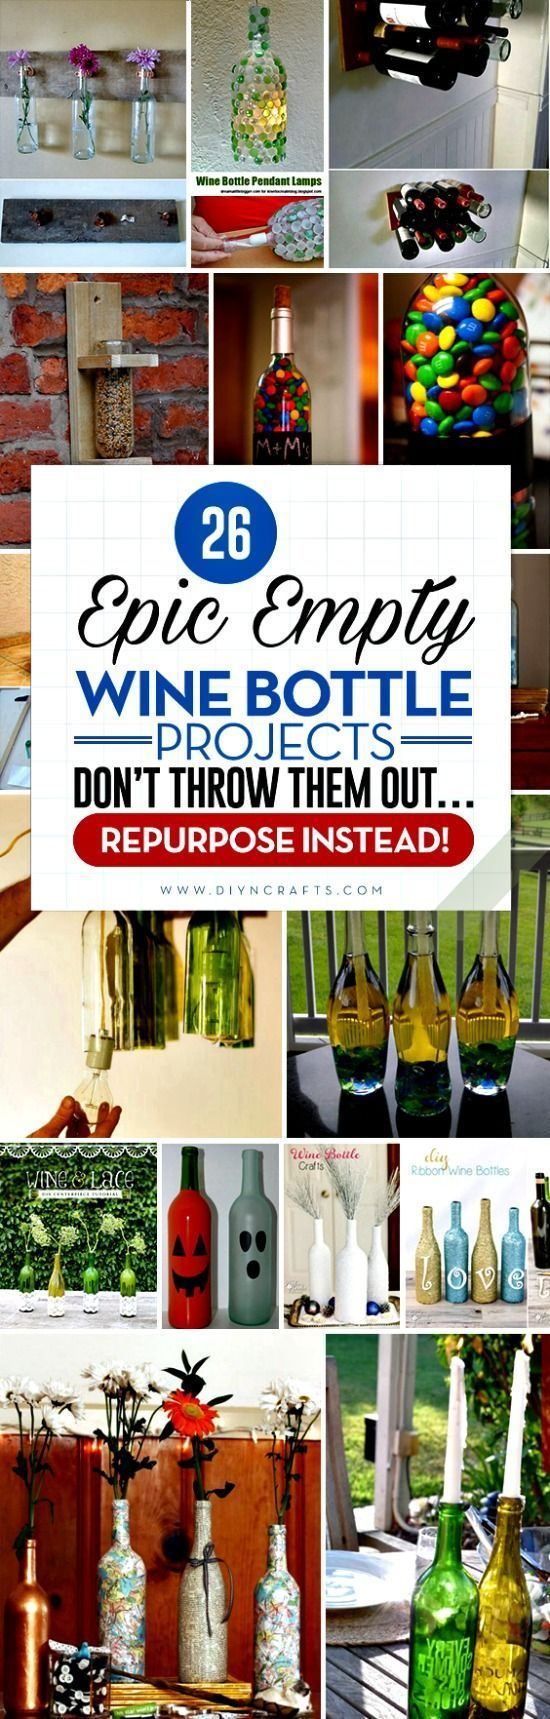 26 Epic Empty Wine Bottle Projects – Don't Throw them Out… Repurpose Instead! - Wine bottles come in all different shapes, sizes and hues, and those diverse qualities make them such versatile objects when it comes to upcycling or repurposing. I was rather